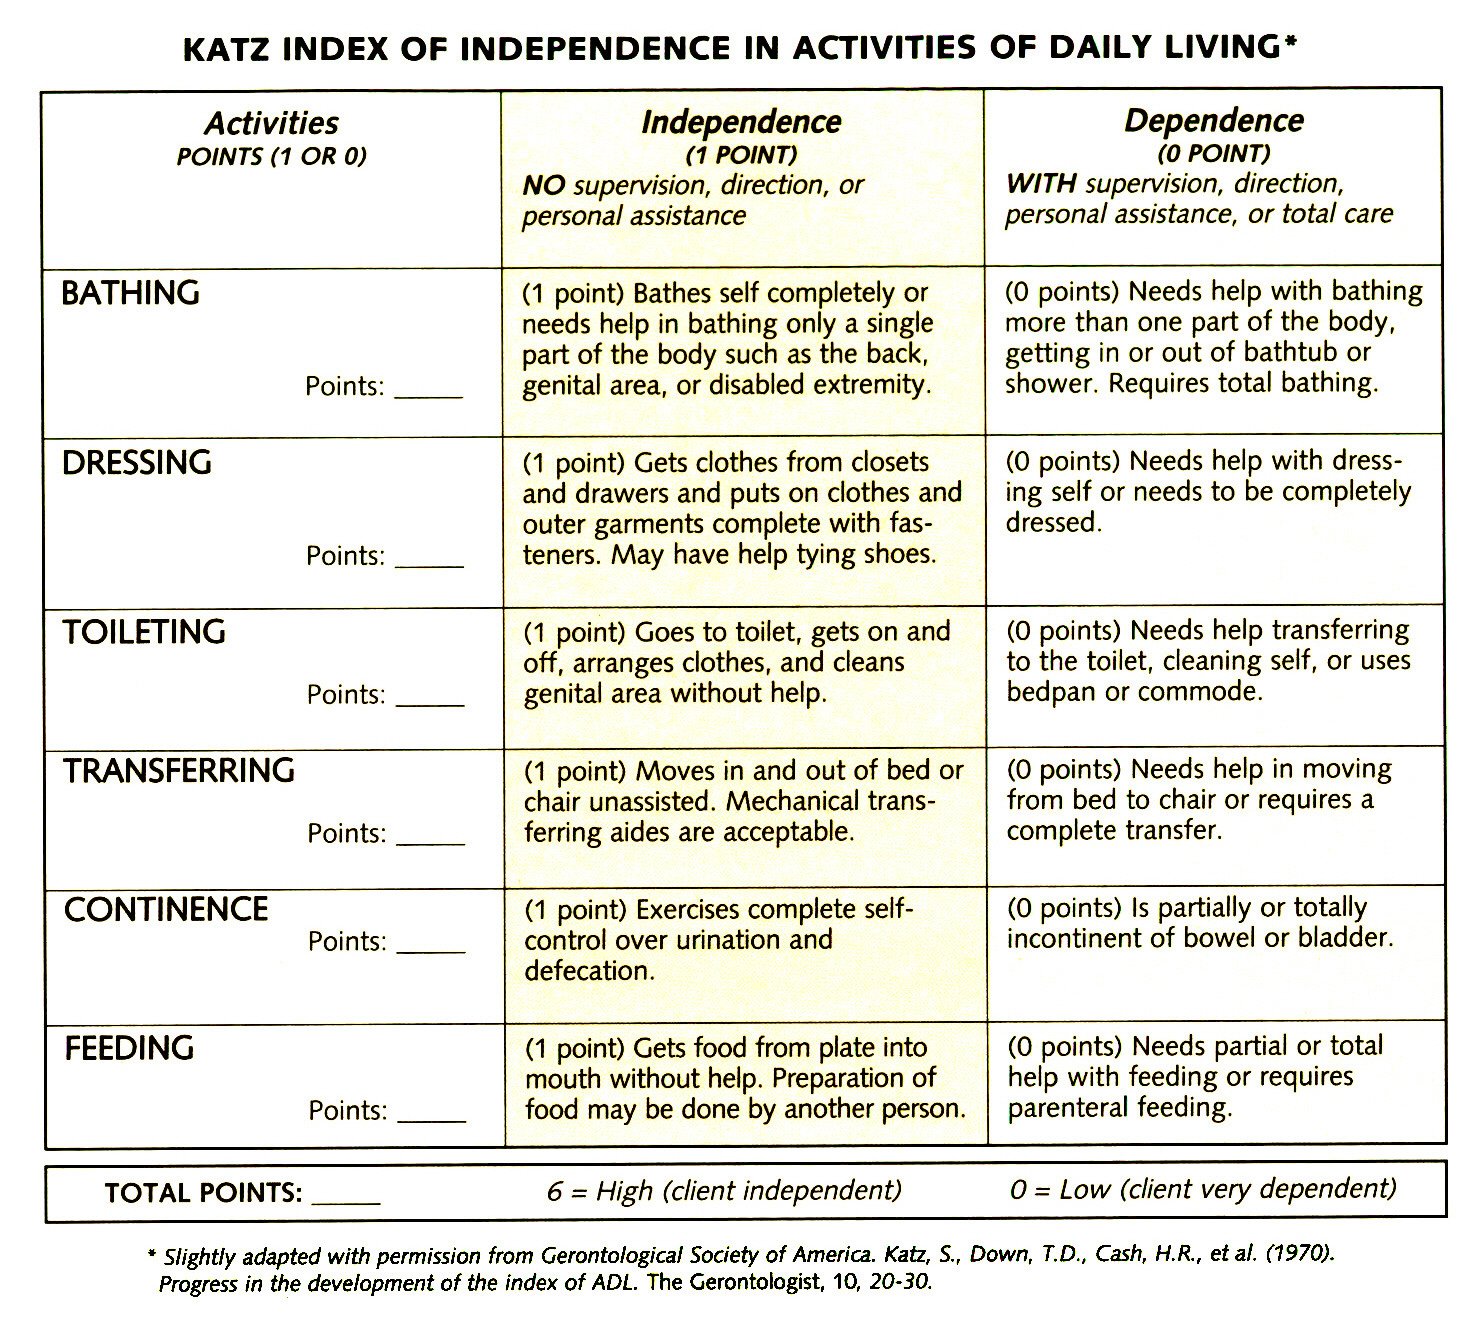 KATZ INDEX OF INDEPENDENCE IN ACTIVITIES OF DAILY LIVING*